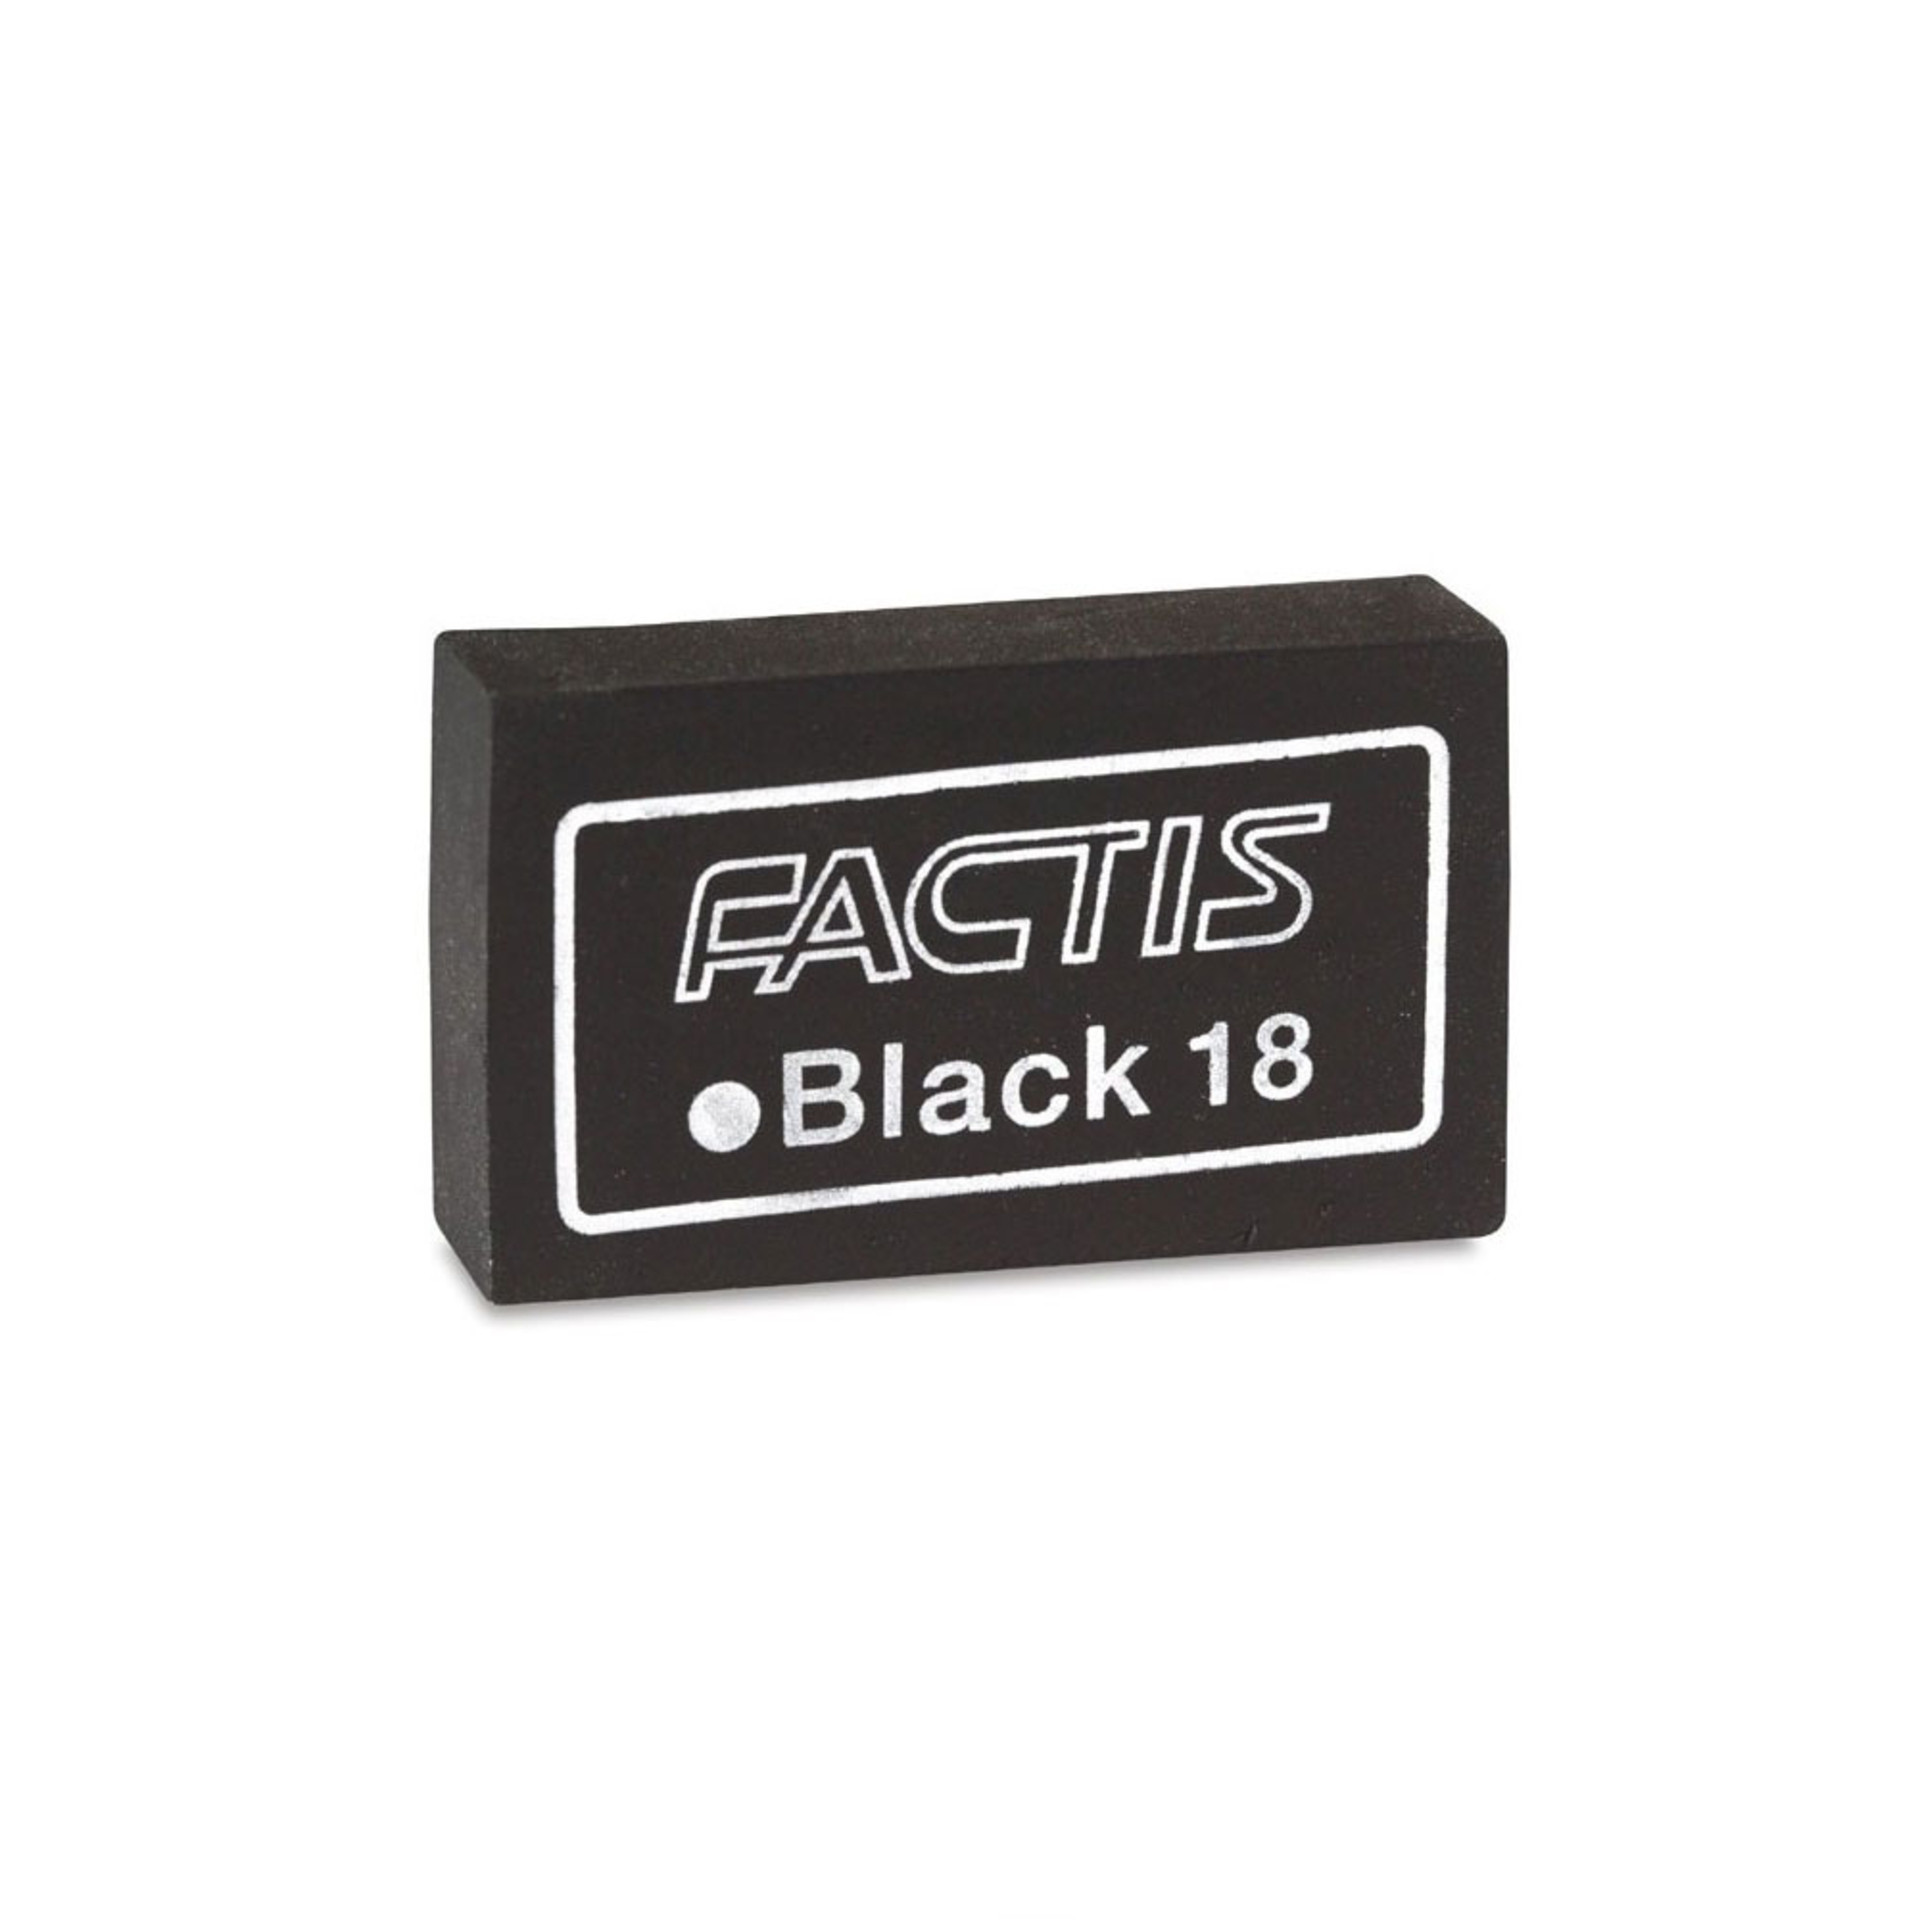 General's Black Factis Magic Eraser